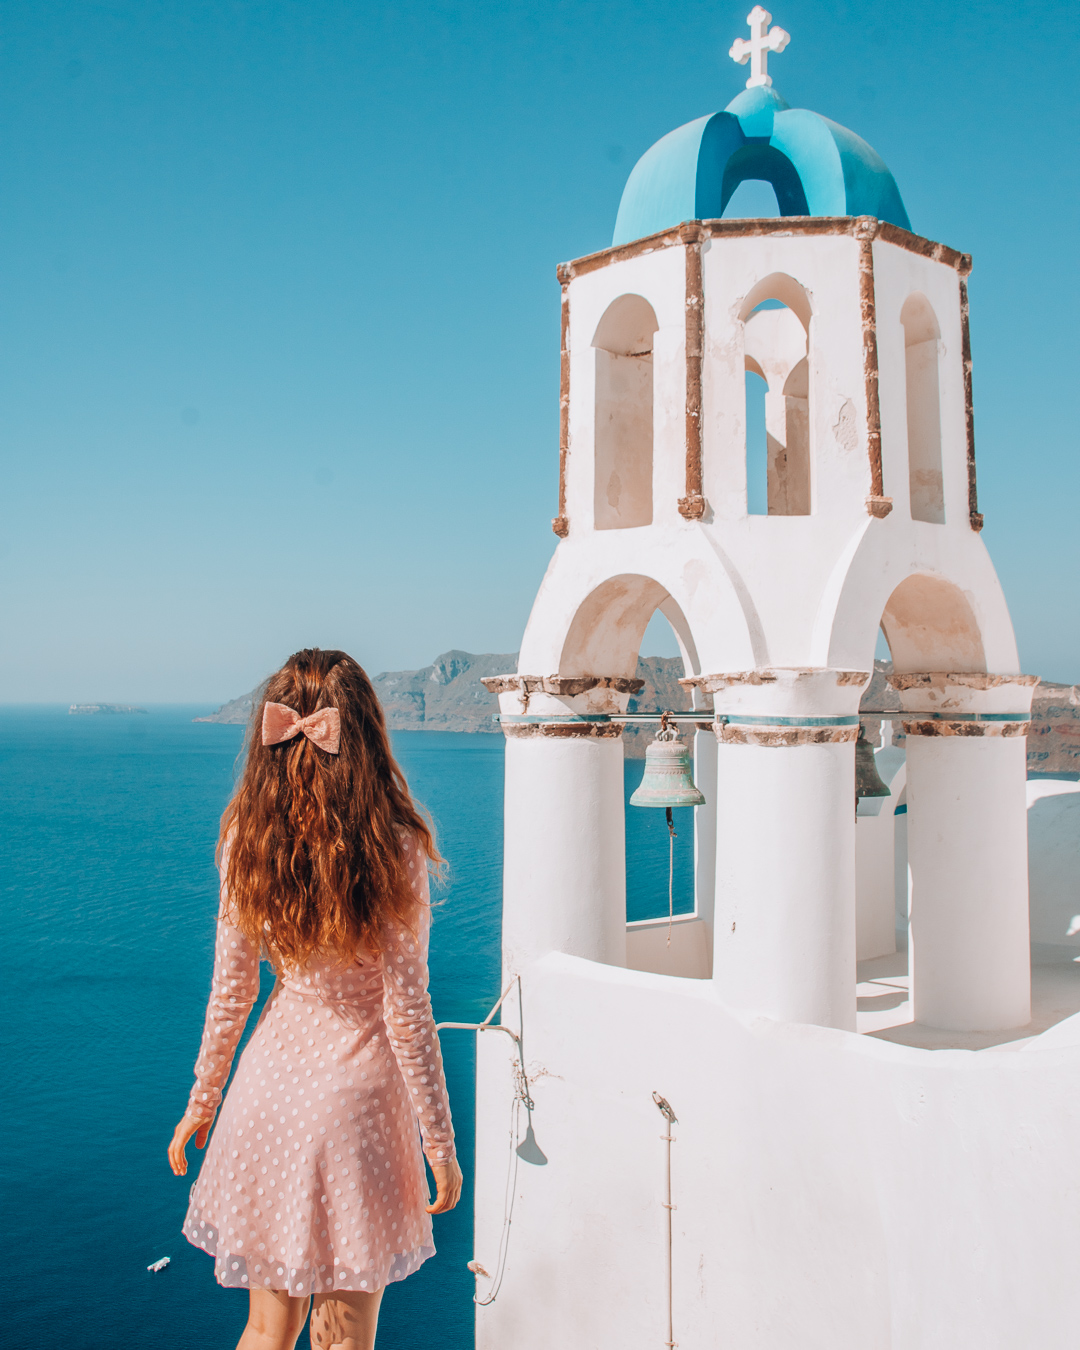 GIRL with a pink dress NEXT TO a BELL TOWER in Santorini